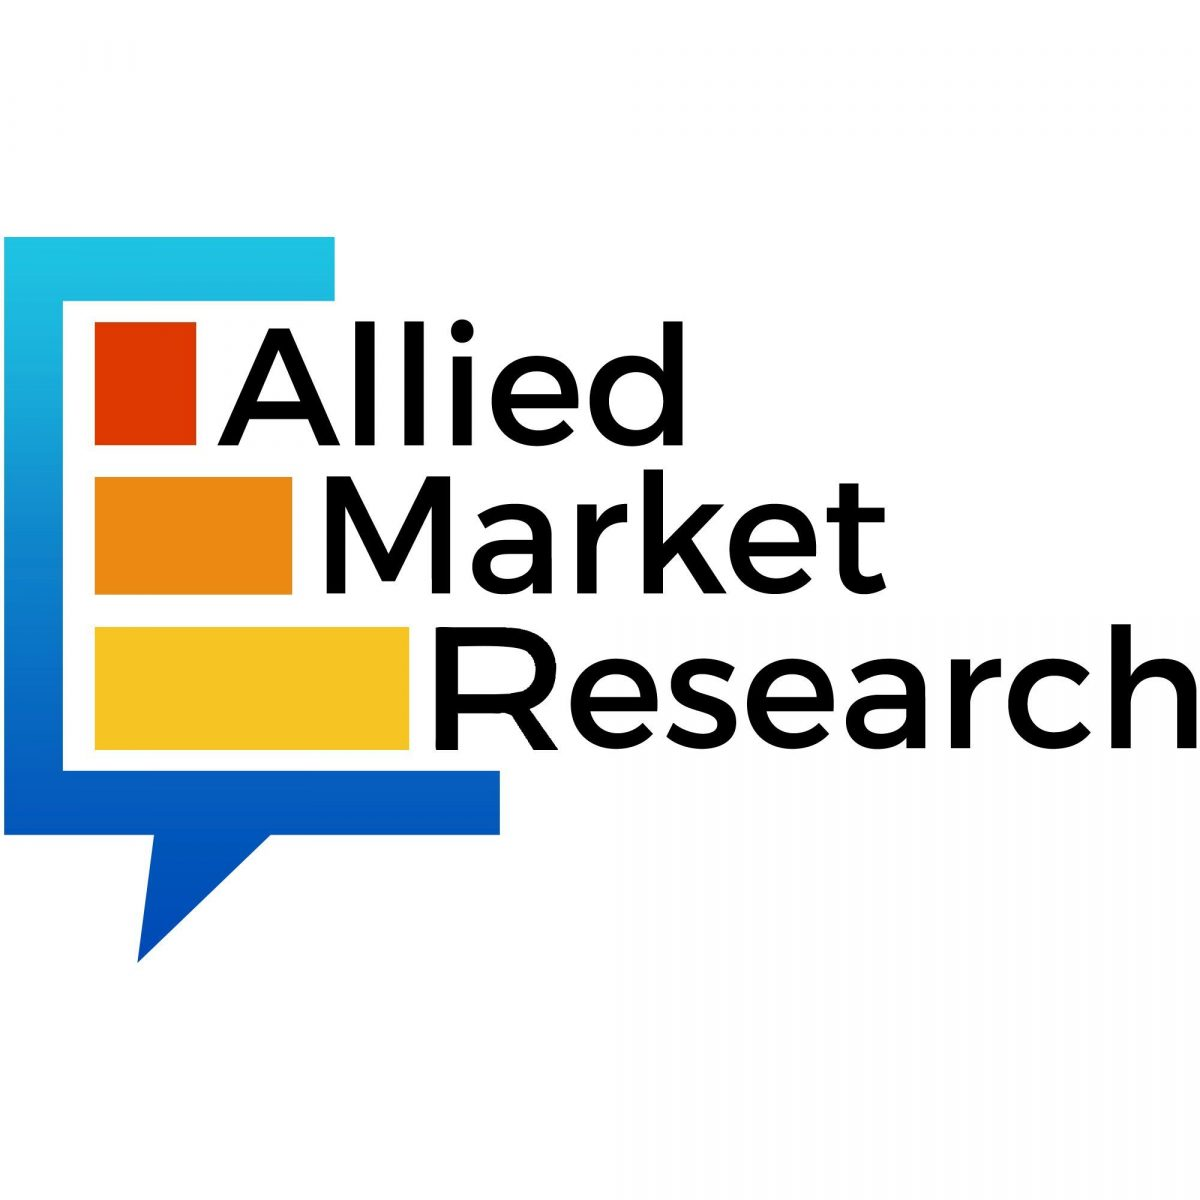 Automated Guided Vehicle Market to Reach $13.52 Bn, Globally, by 2027 at 16.6% CAGR: AMR